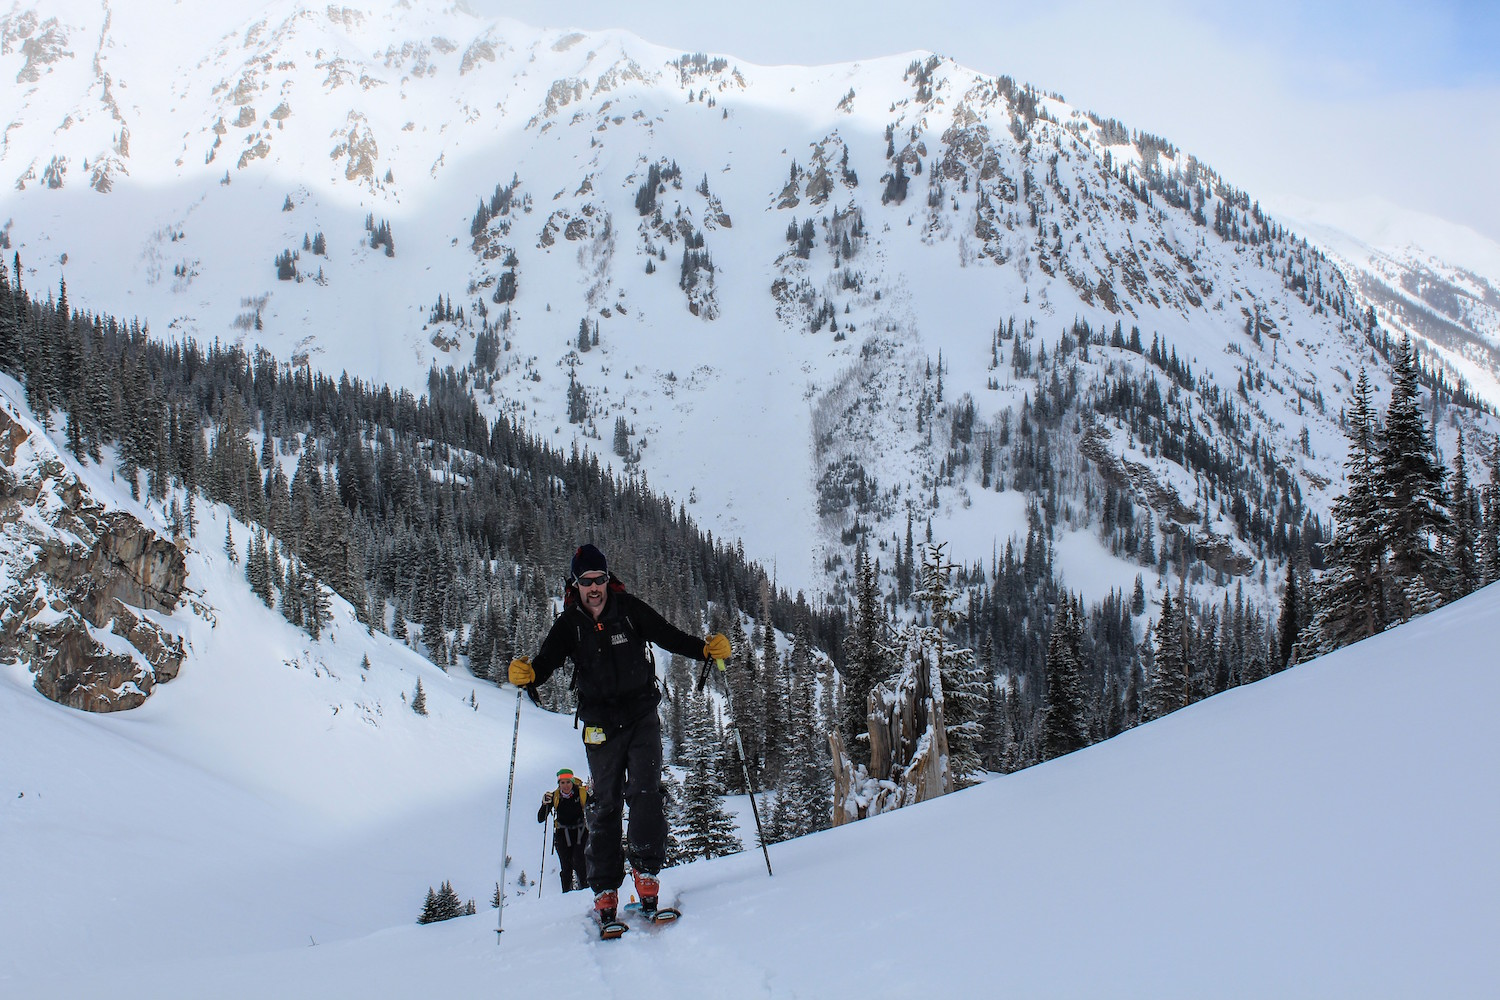 """A BACKCOUNTRY SKIER'S BEST FRIEND"" ADVENTURE JOURNAL"